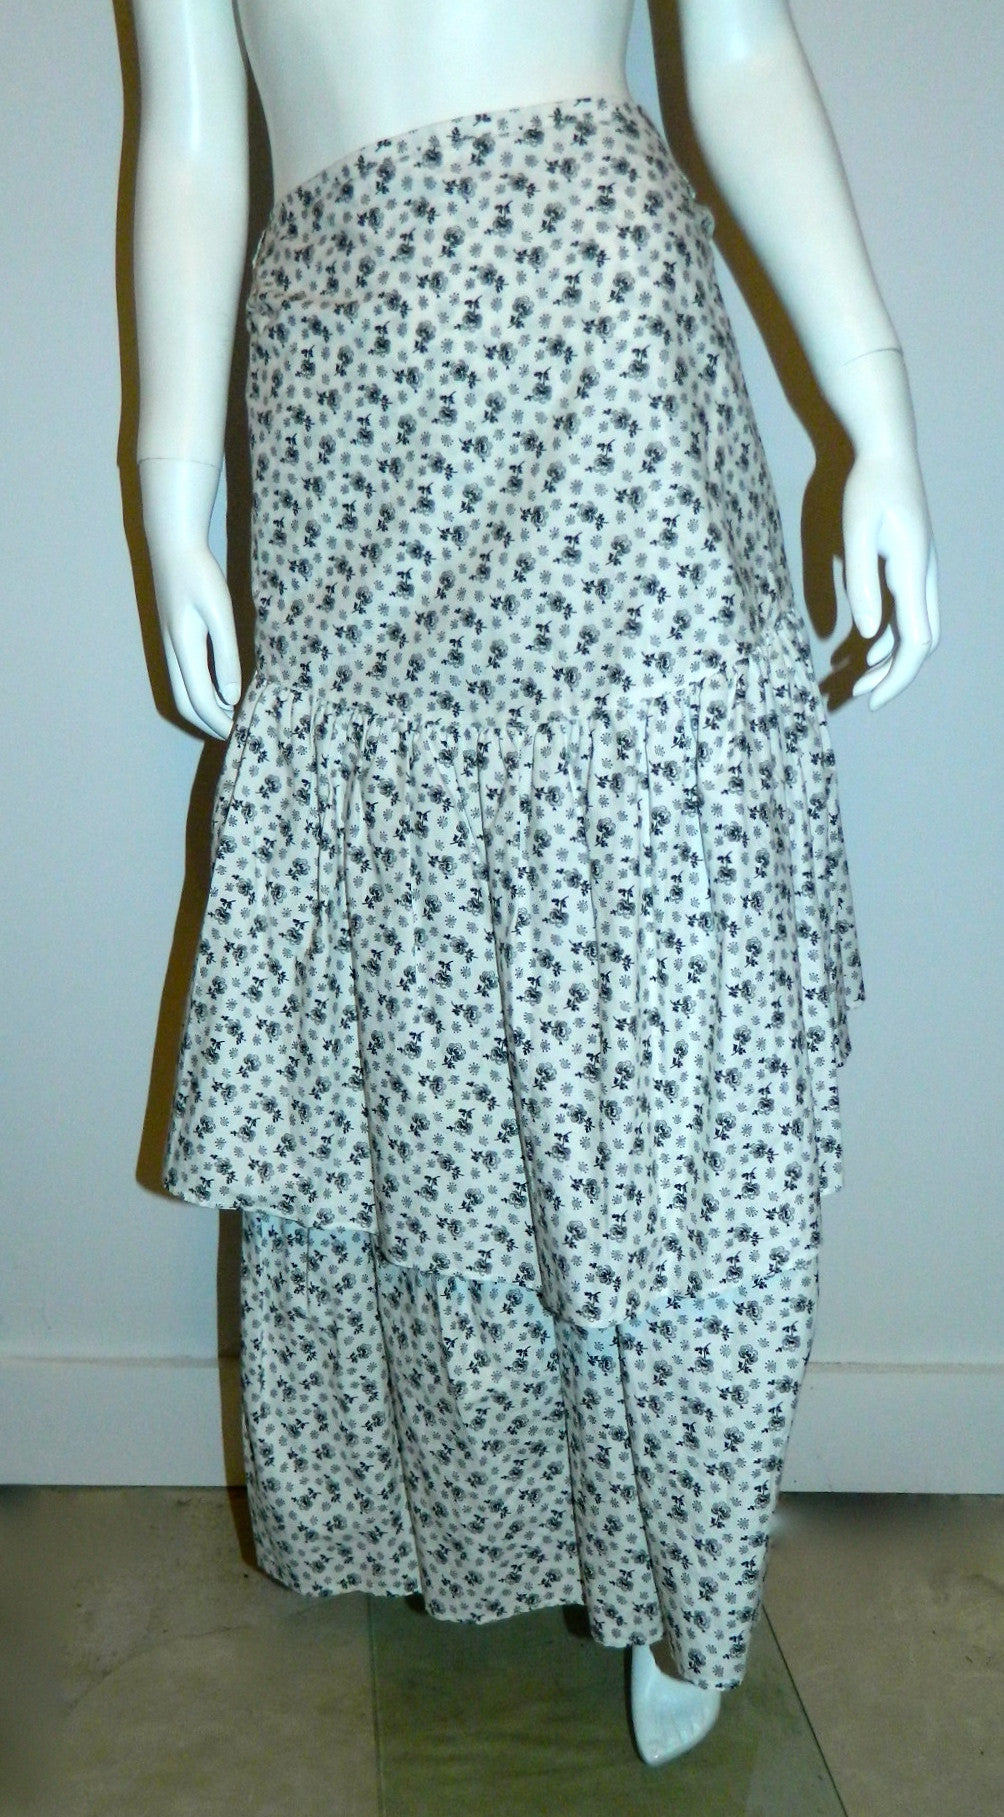 vintage white cotton KENZO floral print tiered skirt / 1980s strapless dress 40 / US Medium